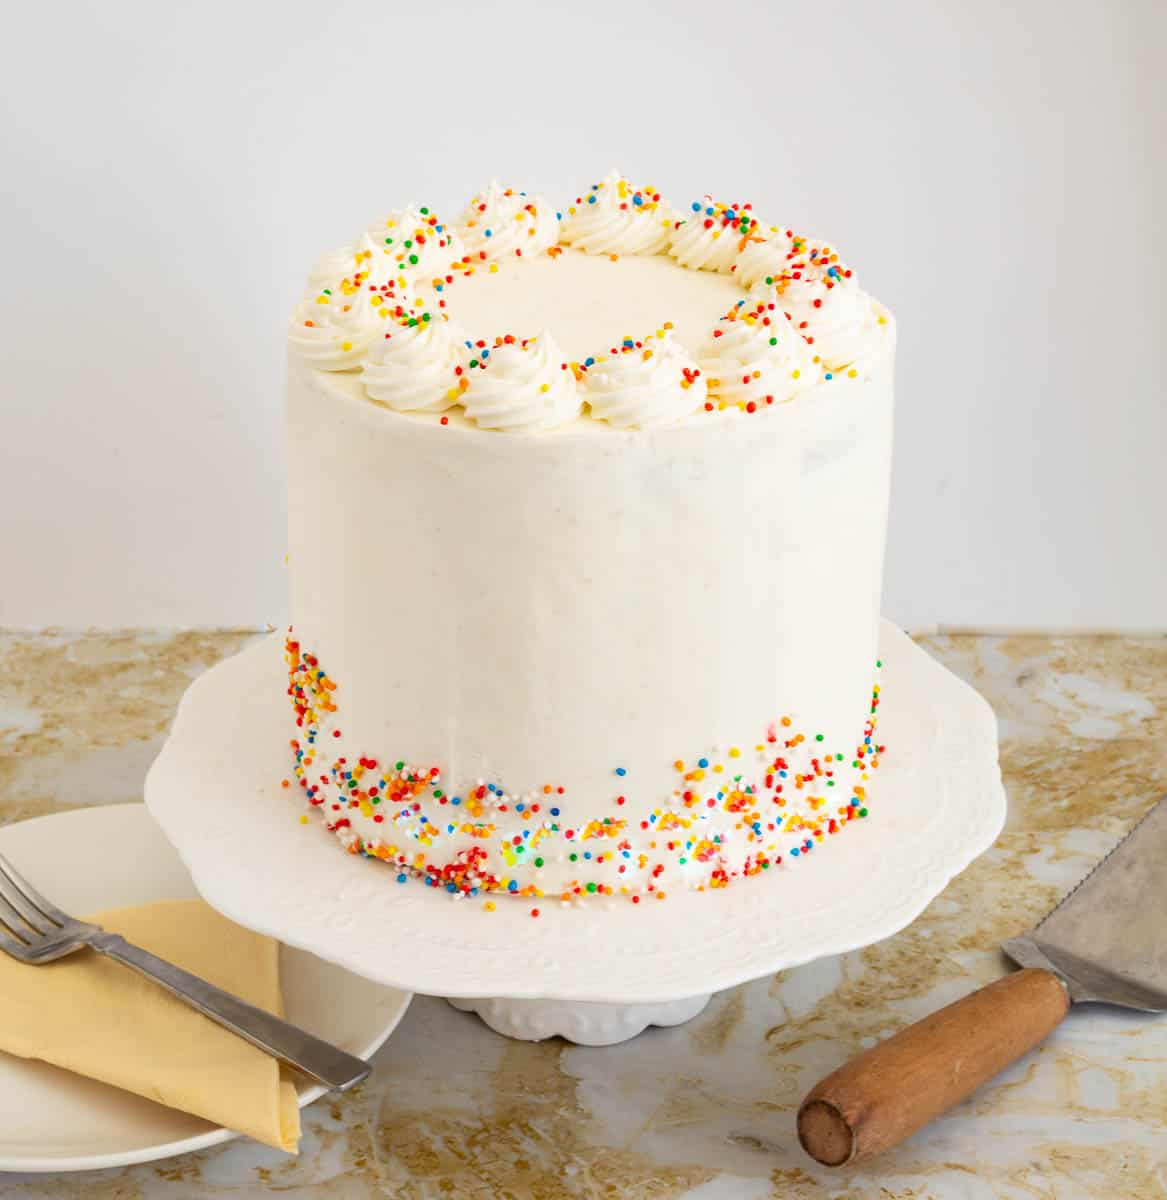 Frosted cake on a cake stand